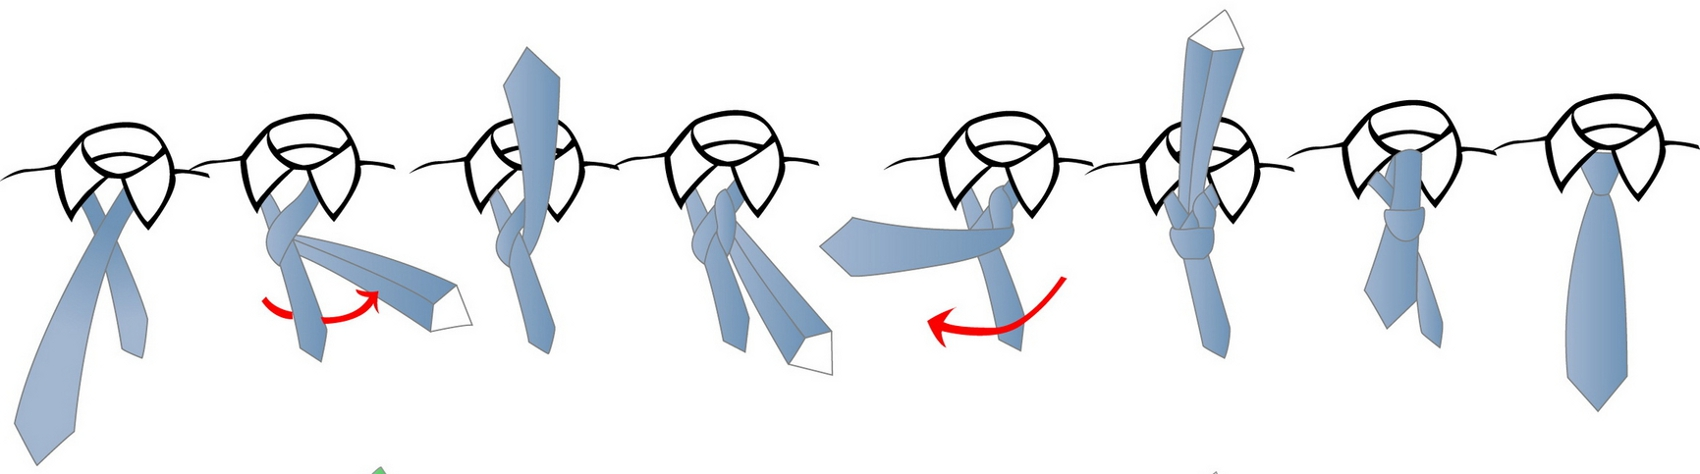 Half Windsor Tie Knot Large Pictures